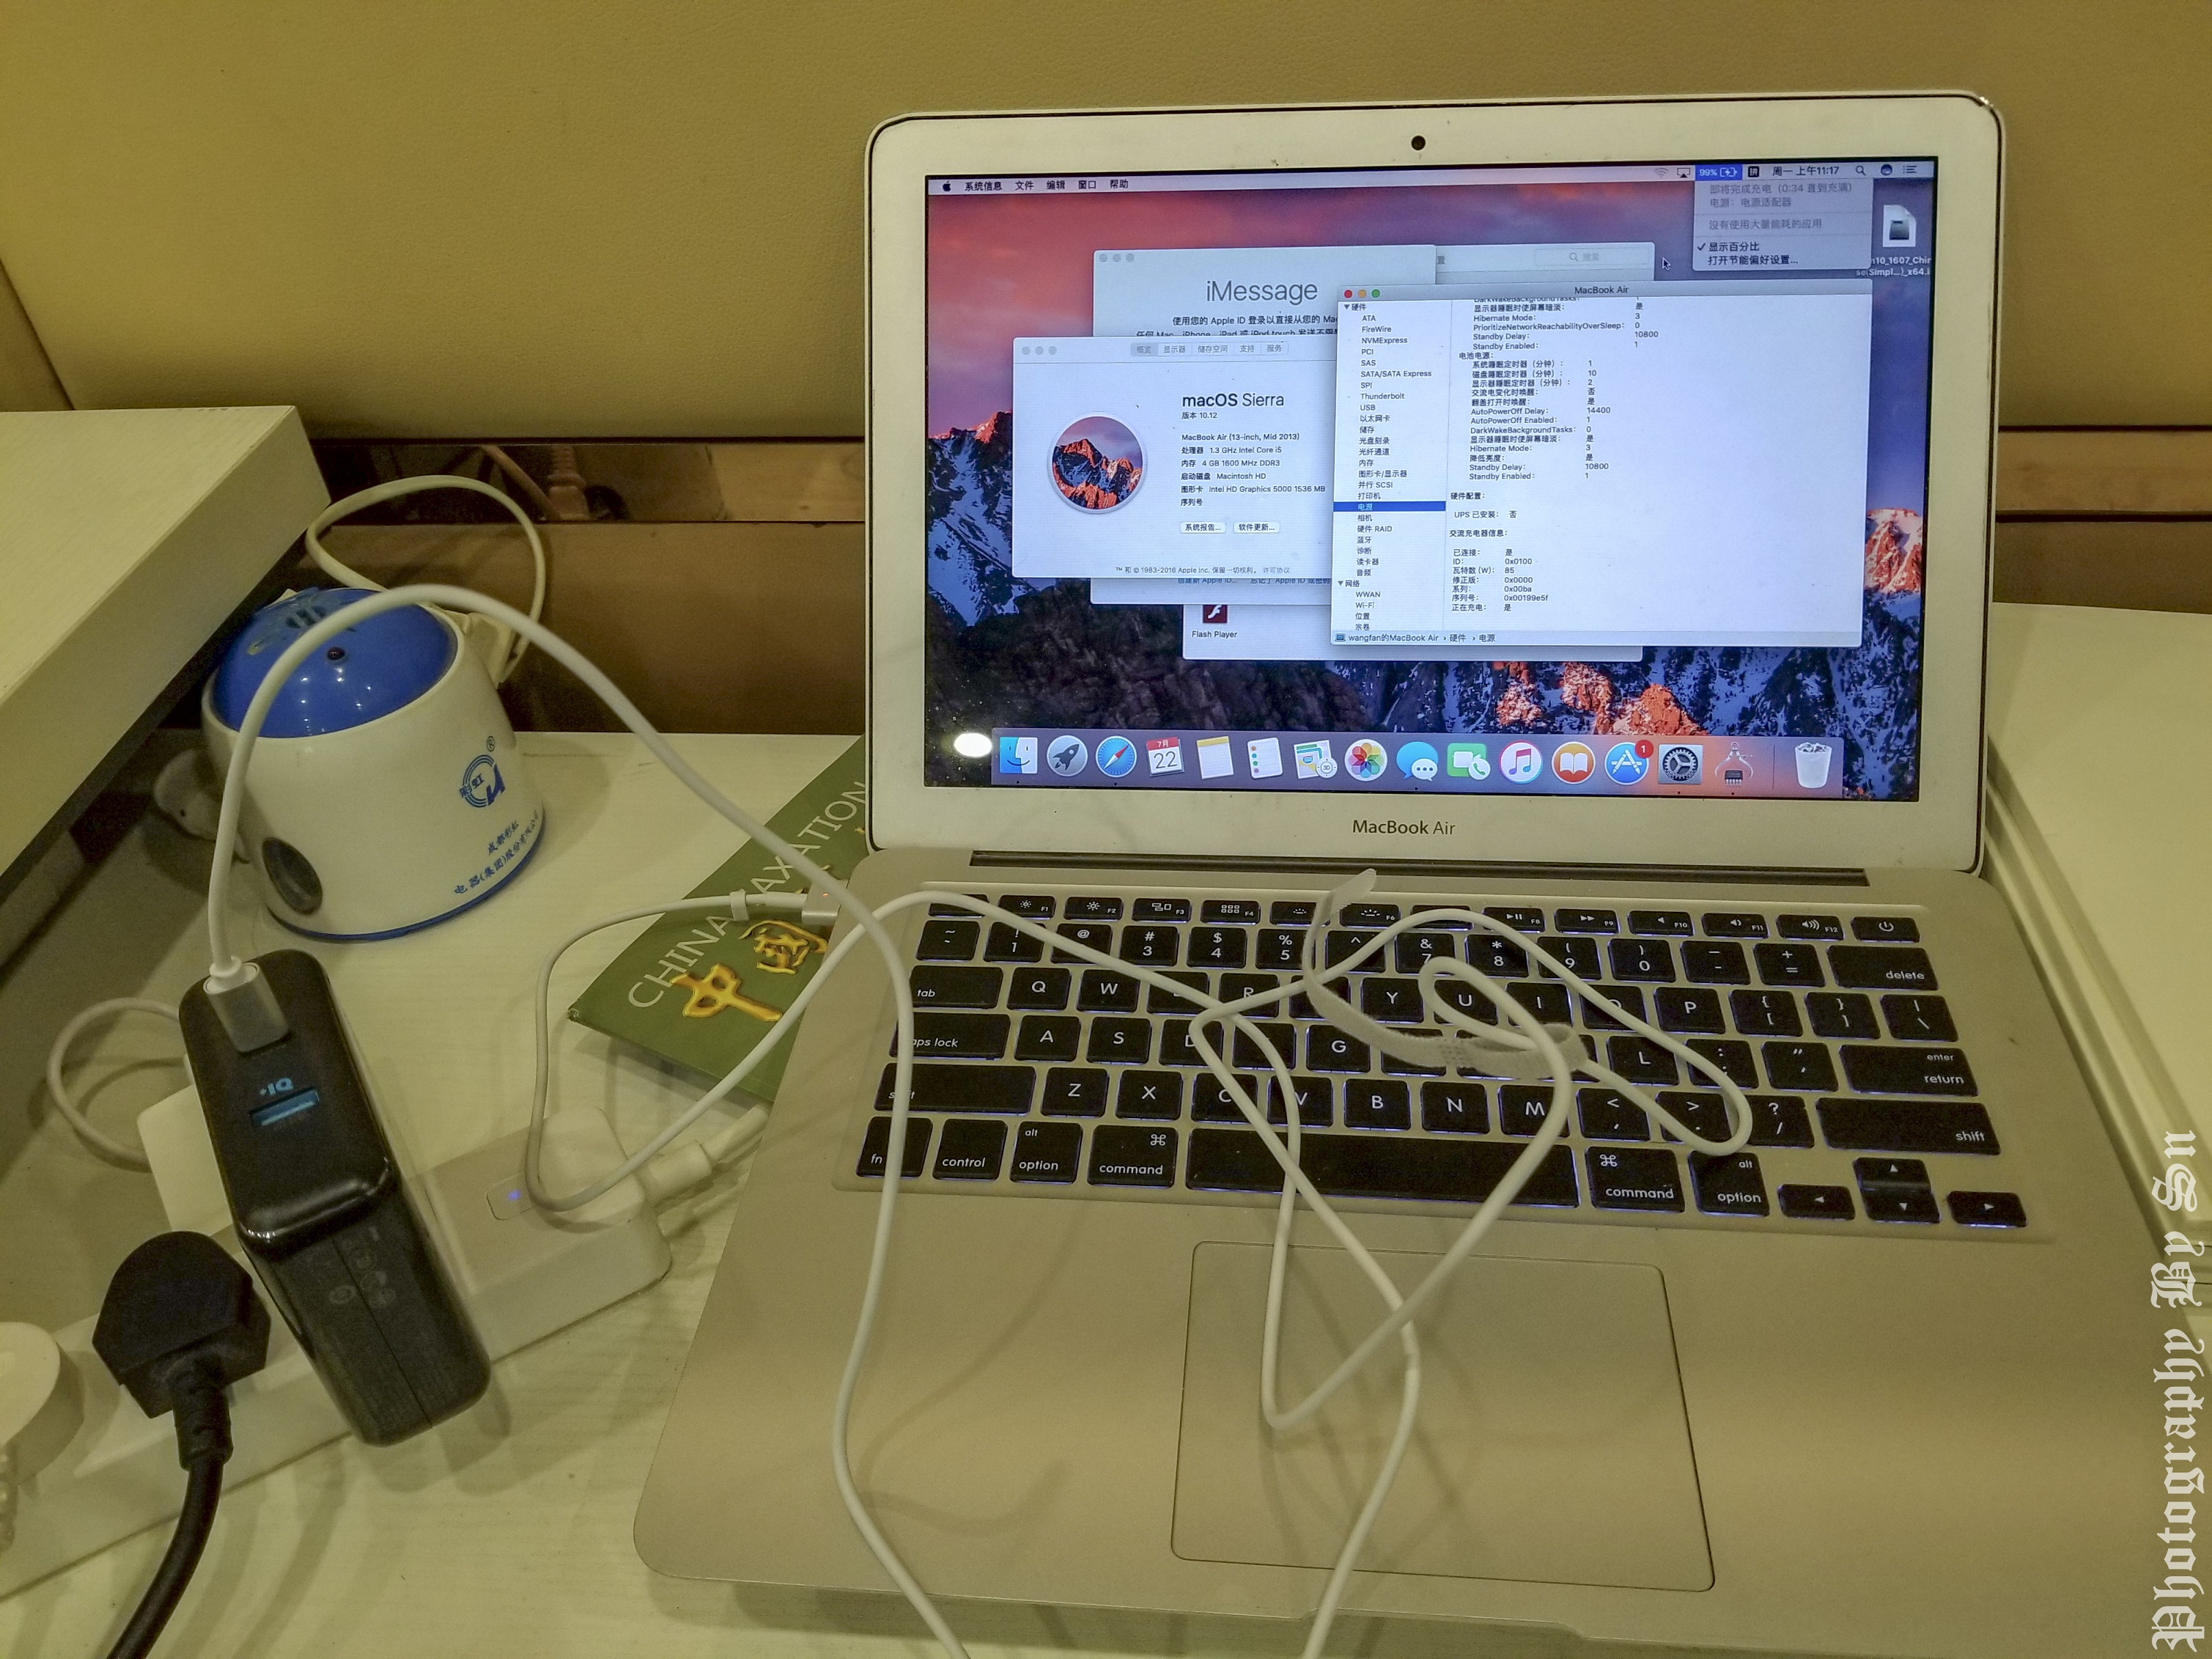 macbook air magsafe2 with anker power.jpg